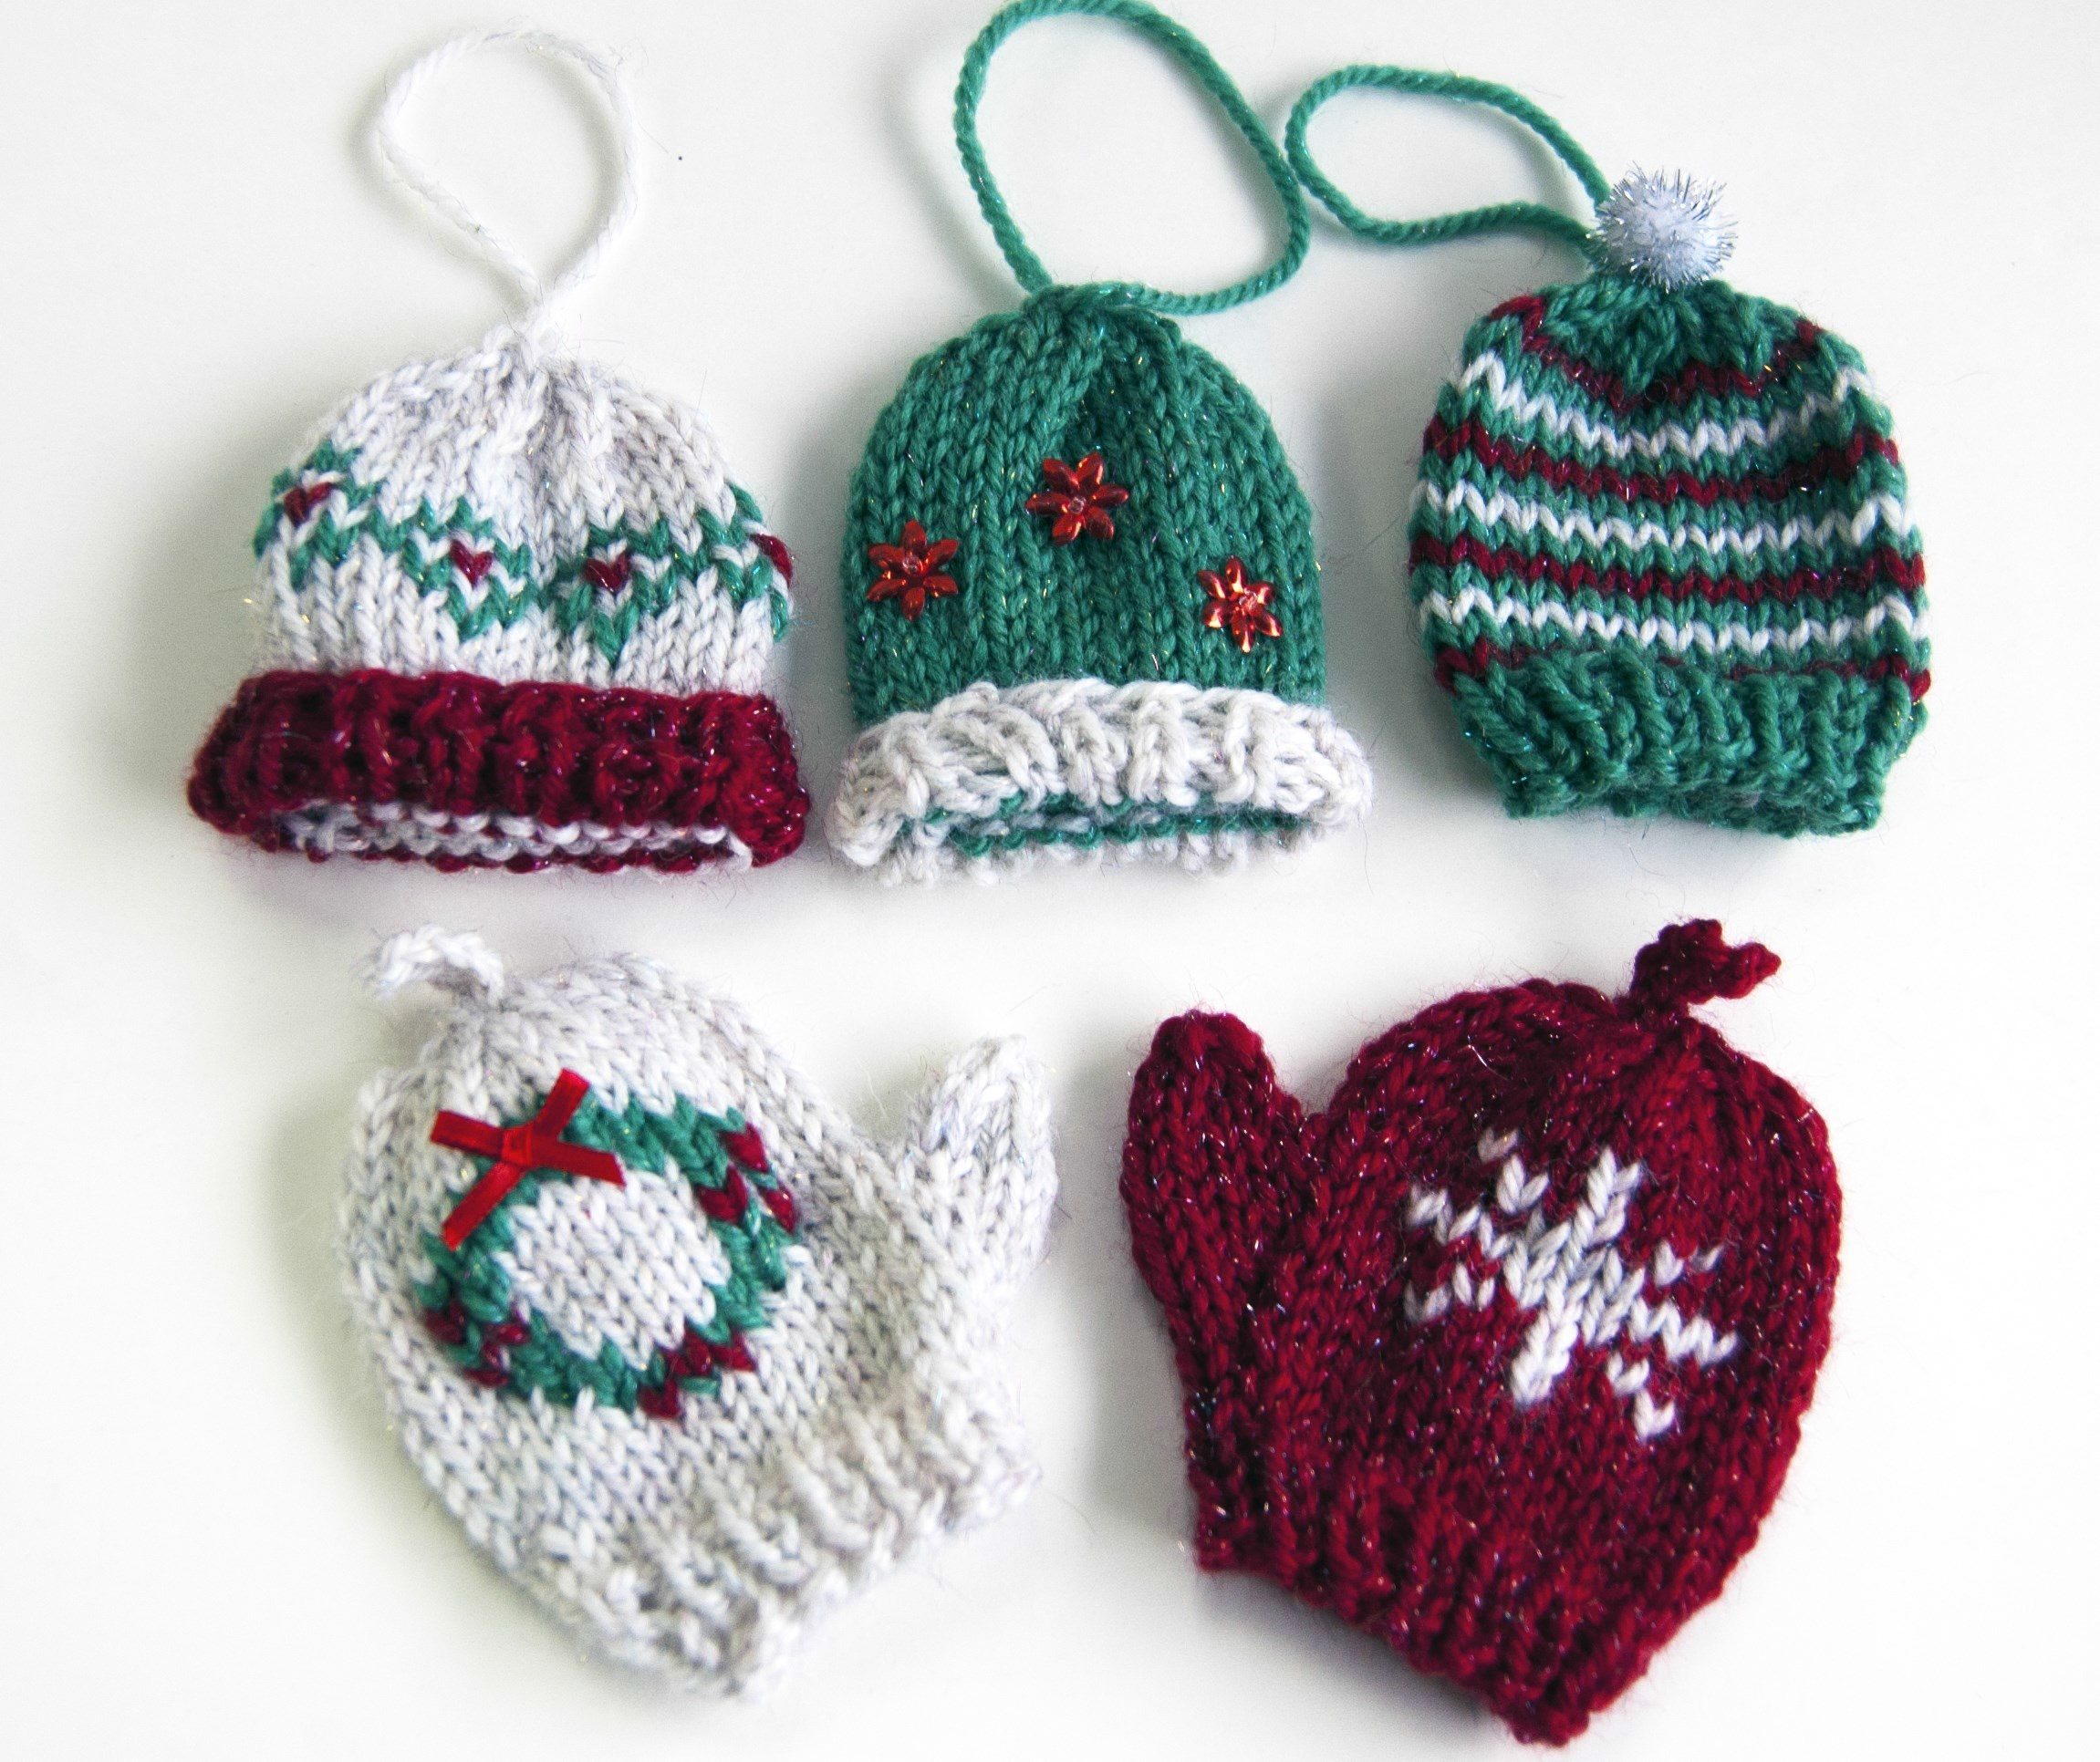 Knitting pattern for mini mittens and gloves knitting and free knitting pattern for mini mittens and gloves knit christmas ornamentschristmas bankloansurffo Choice Image